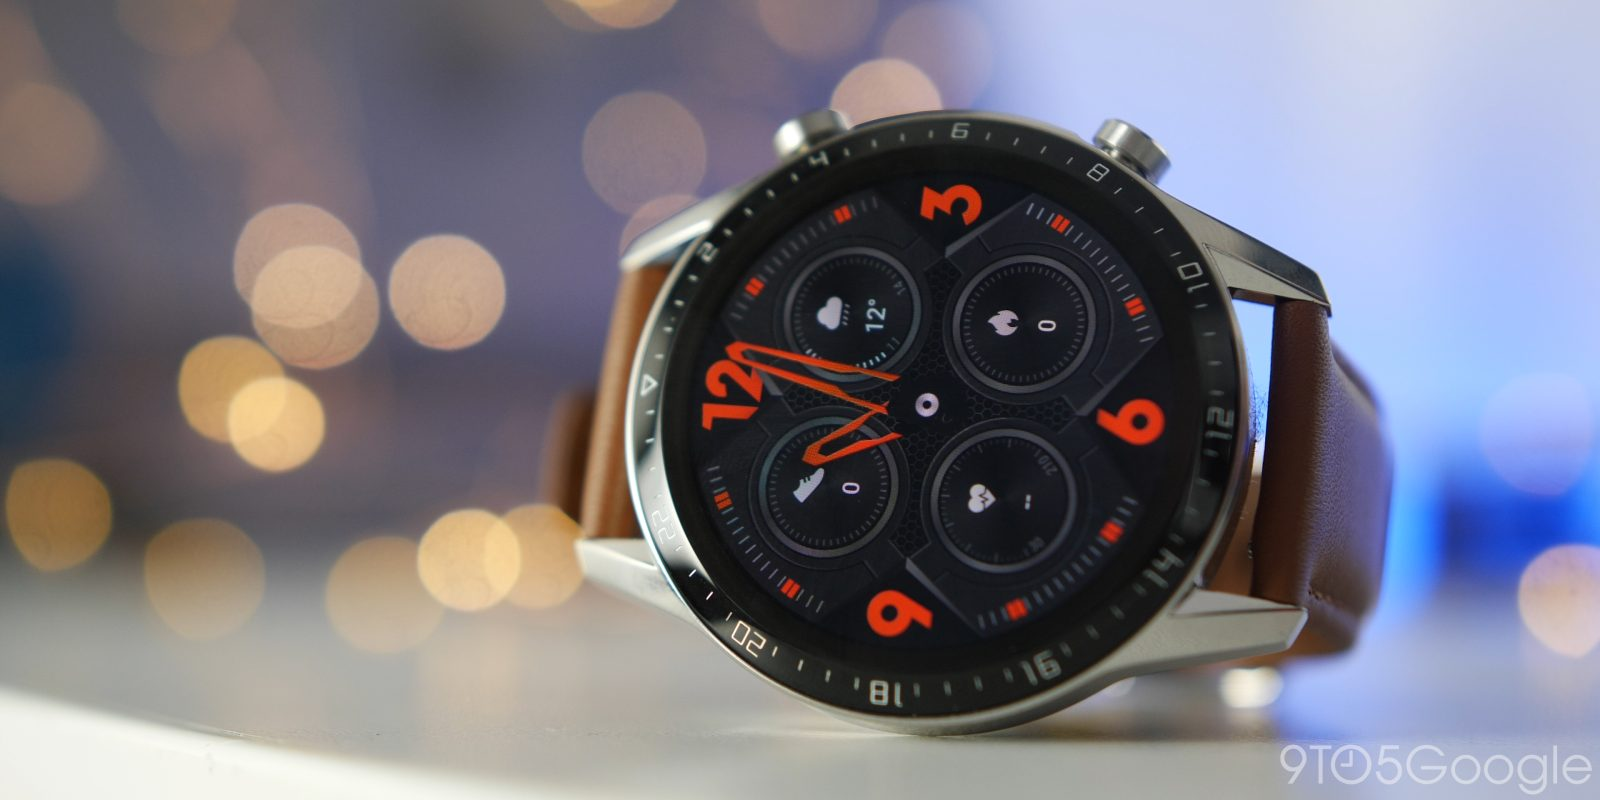 Huawei Watch GT 2 review: Easily the best 'not-so-smart' smartwatch [Video]